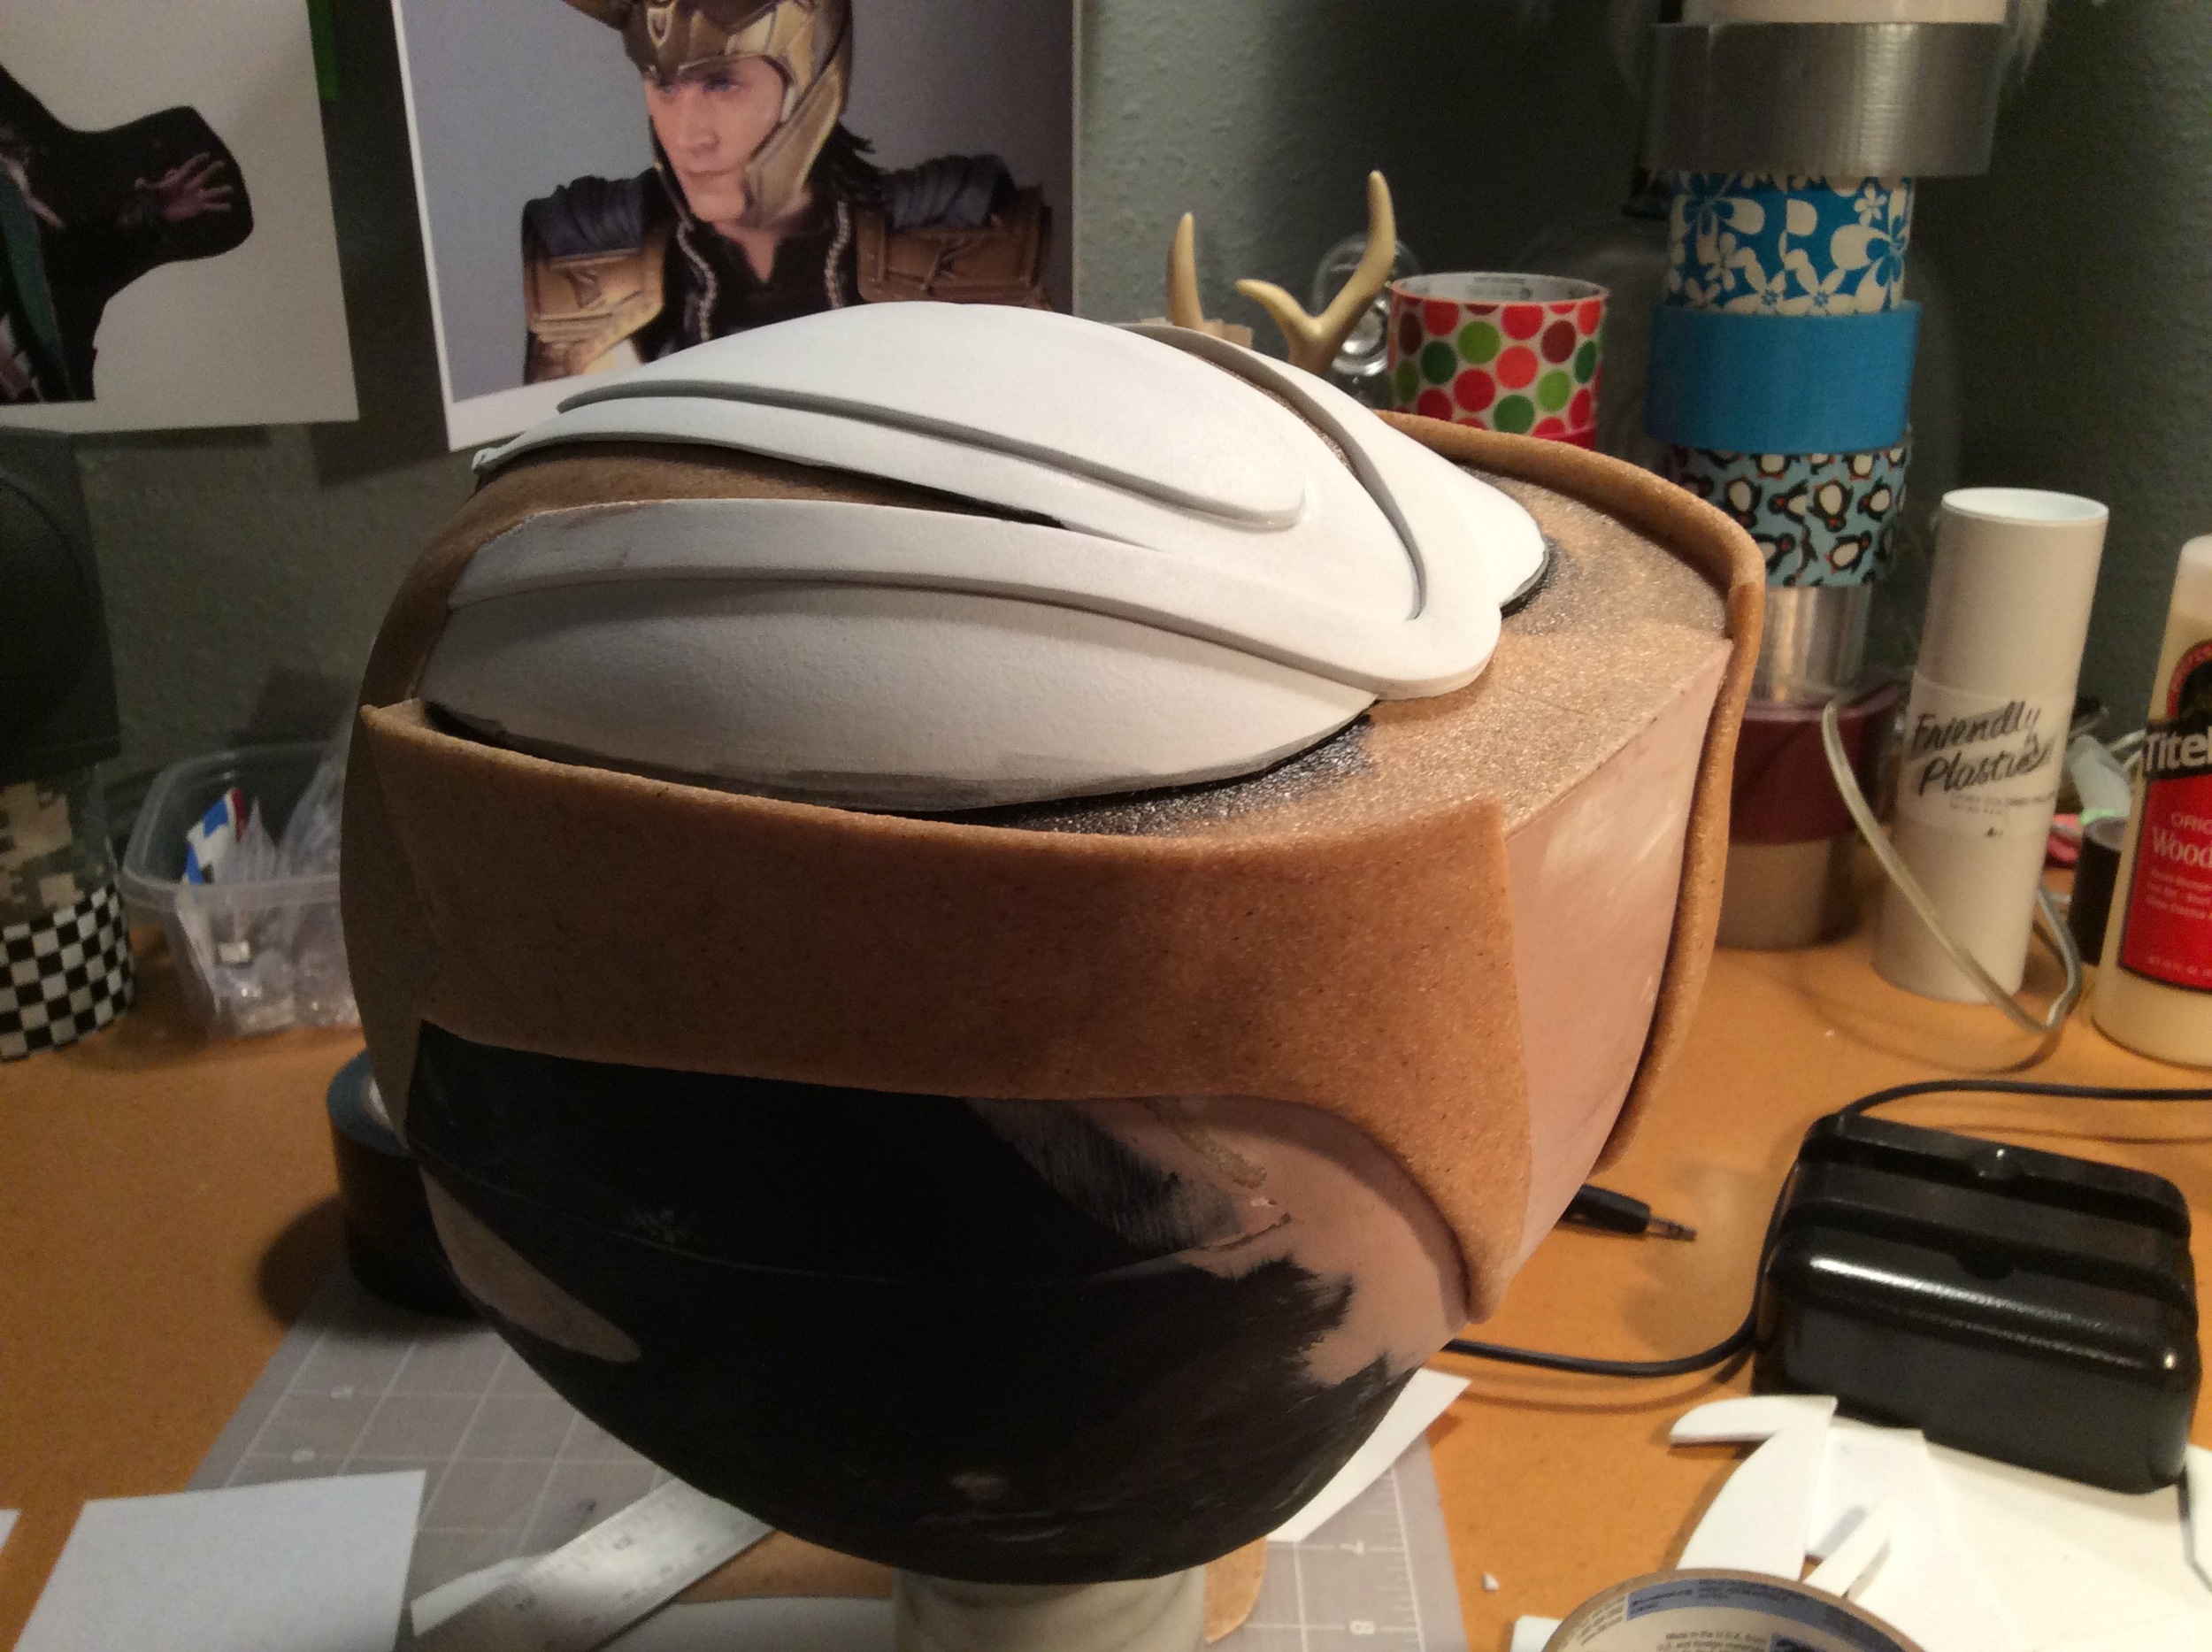 Added more craft foam pieces to the top to mimic the lines.